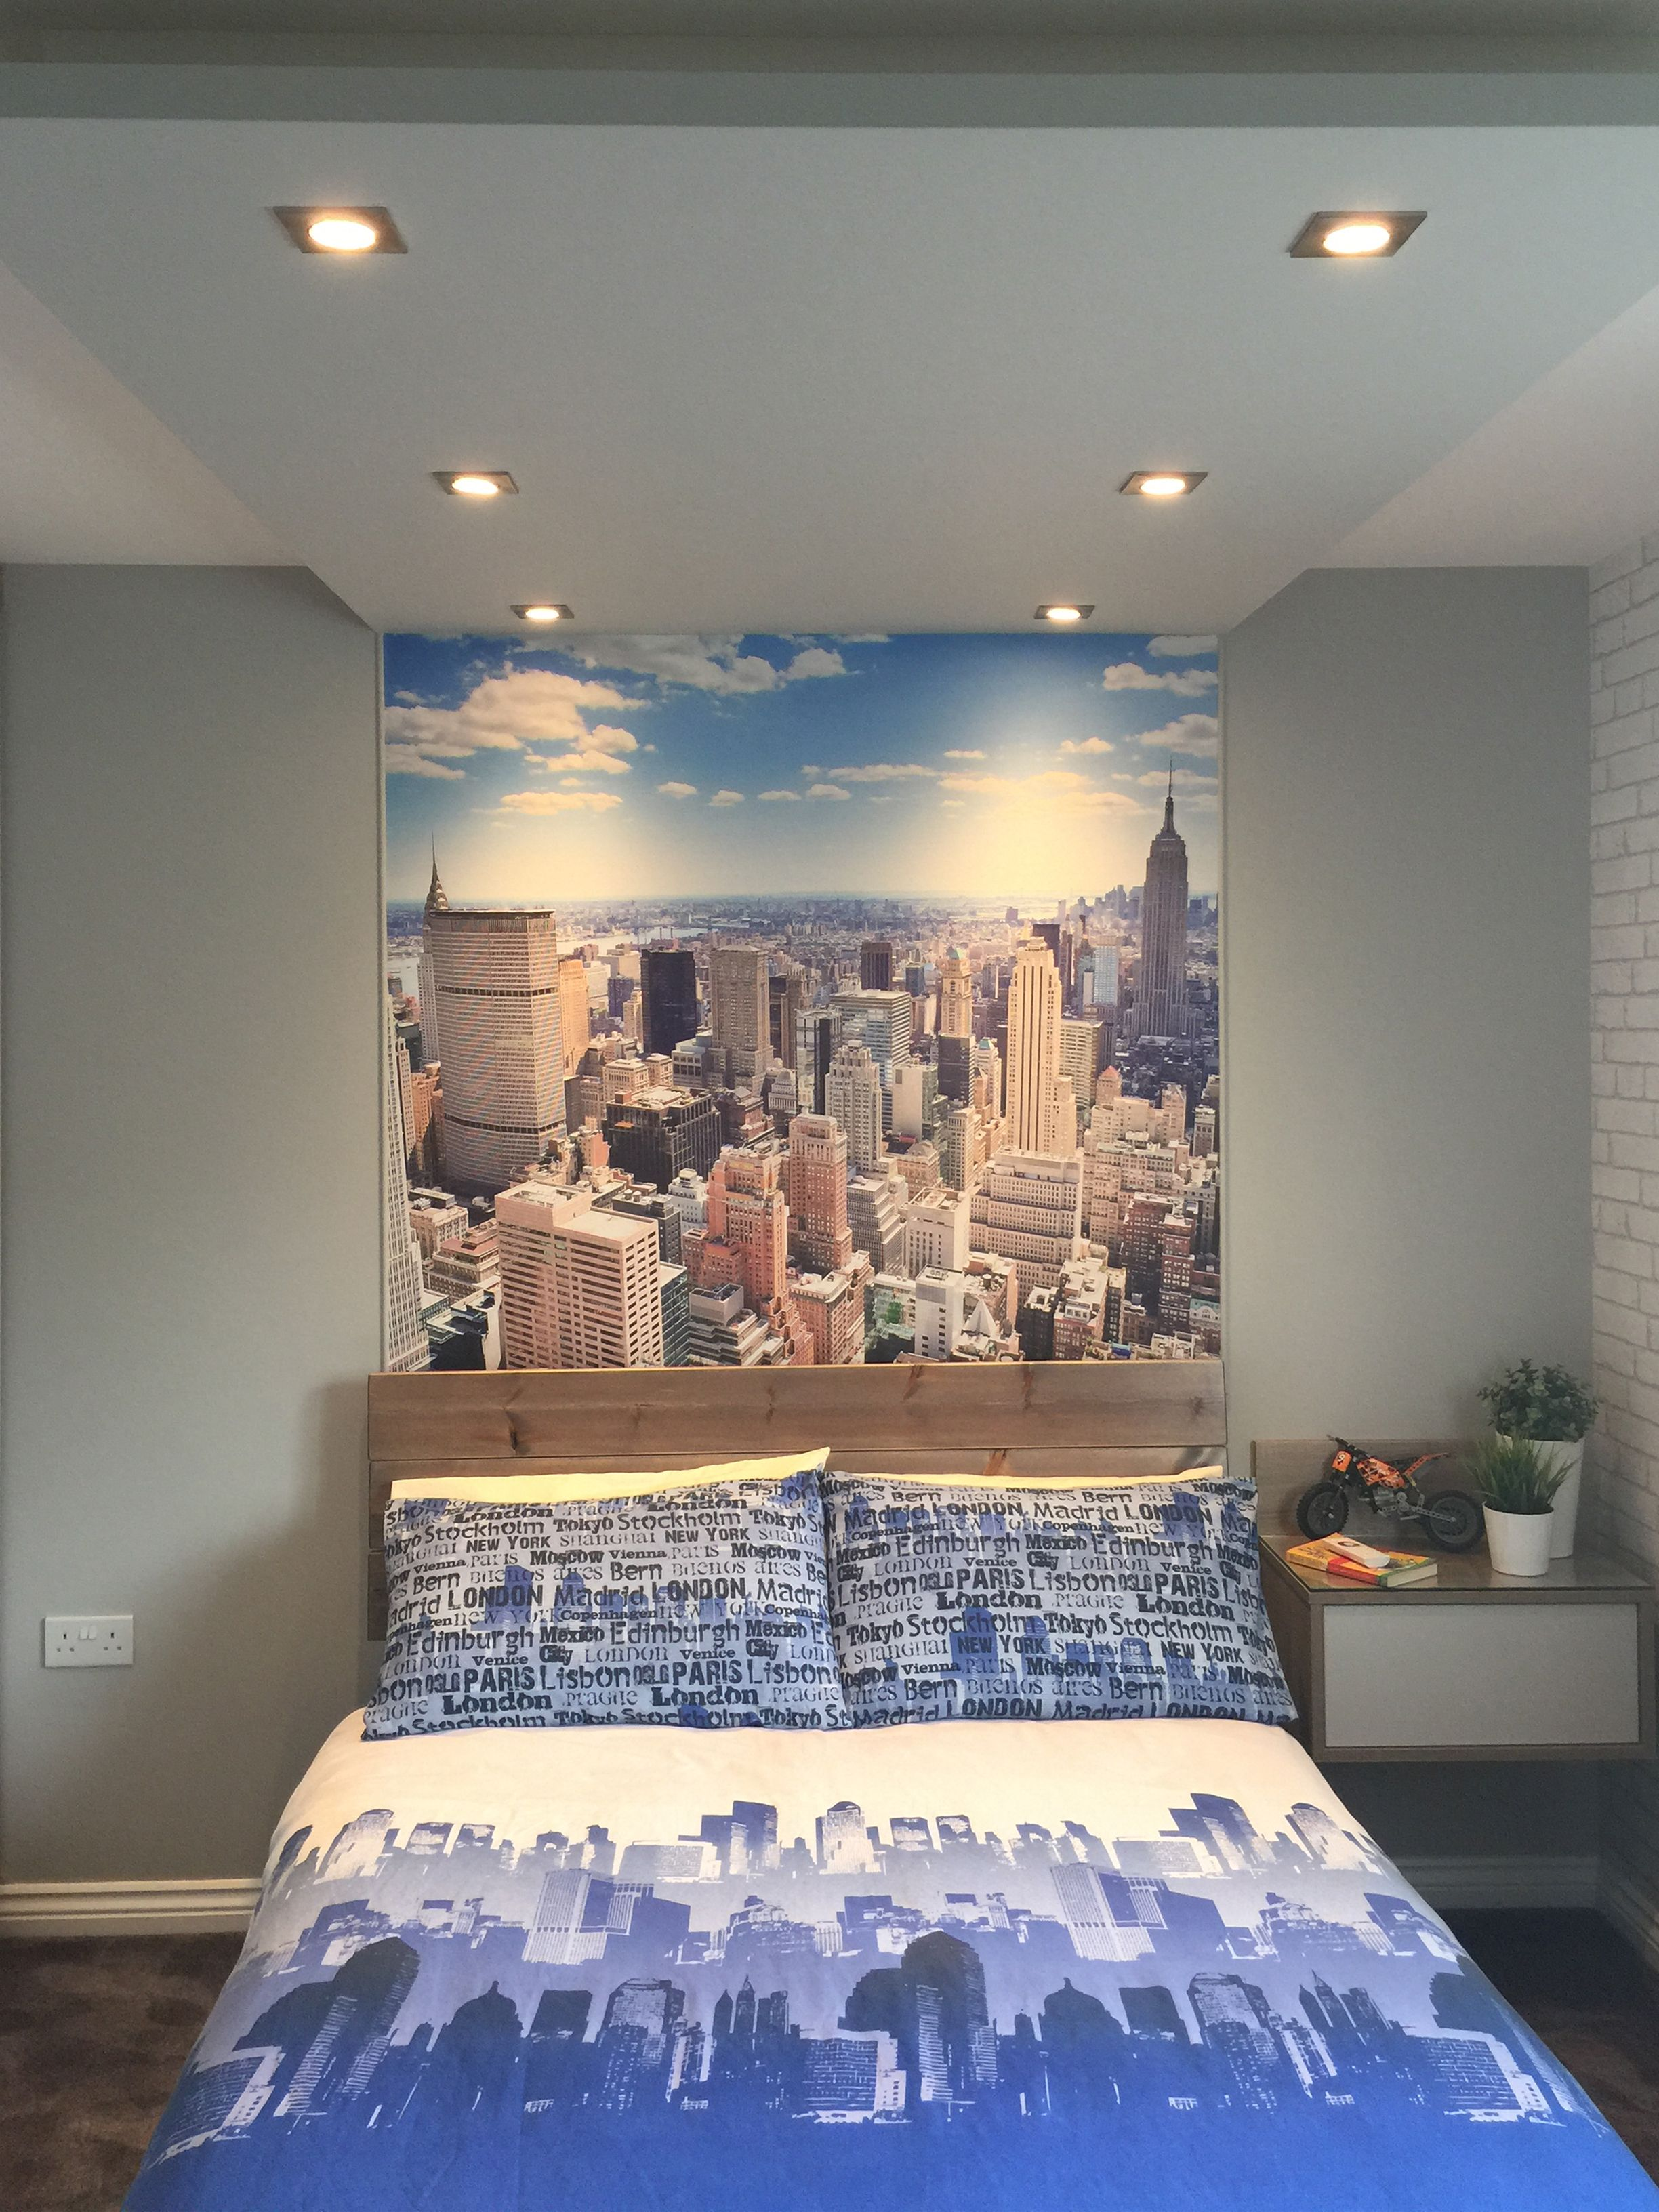 Sunny New York Wallpaper Mural City Bedroom City Theme Bedrooms Wall Murals Bedroom